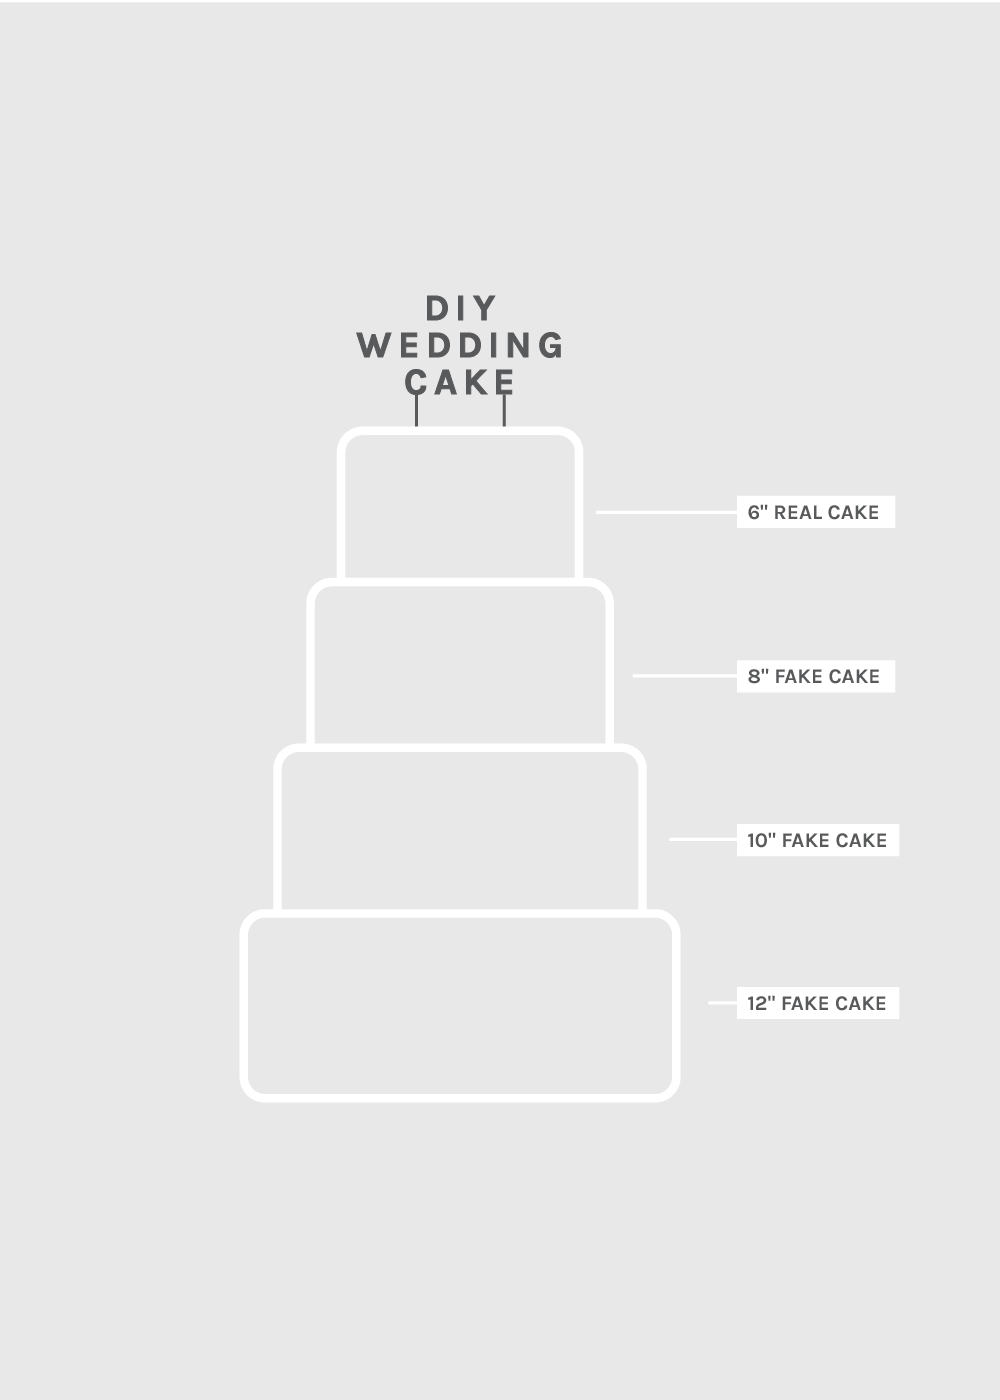 DIY wedding cake template from The Fauxmartha